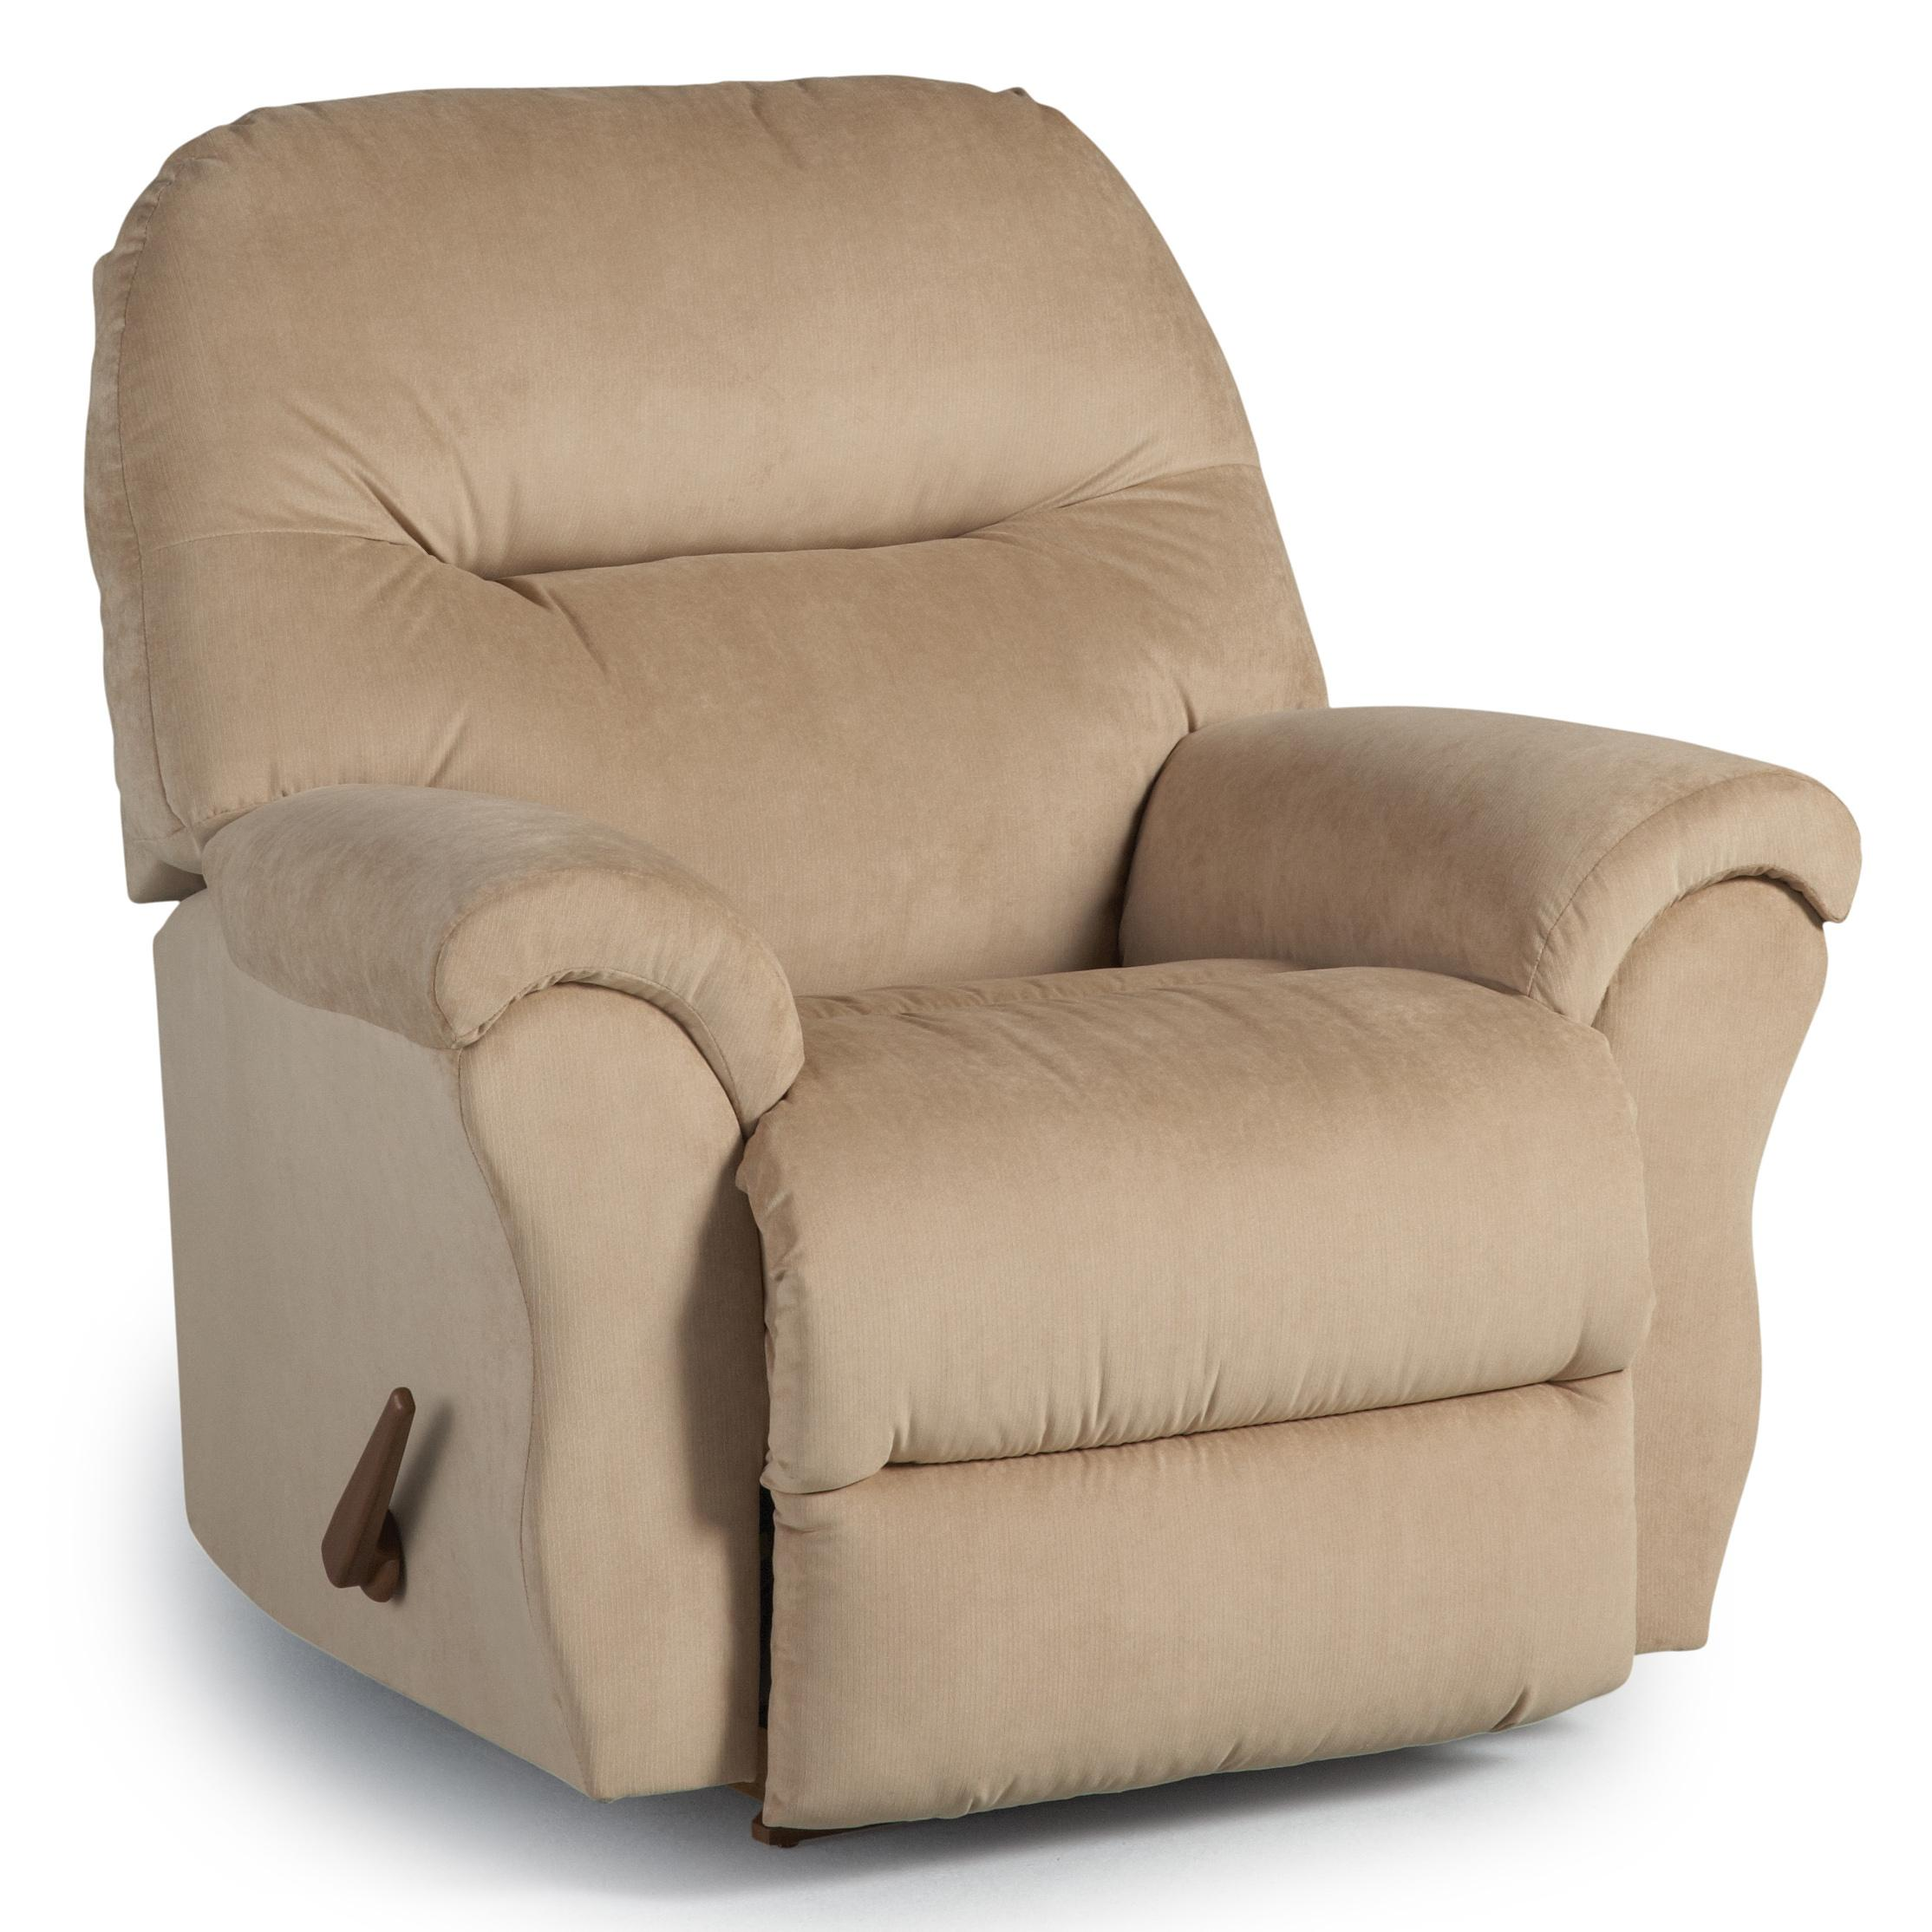 Recliners medium bodie swivel gliding reclining chair by for 2 arm pressback chaise